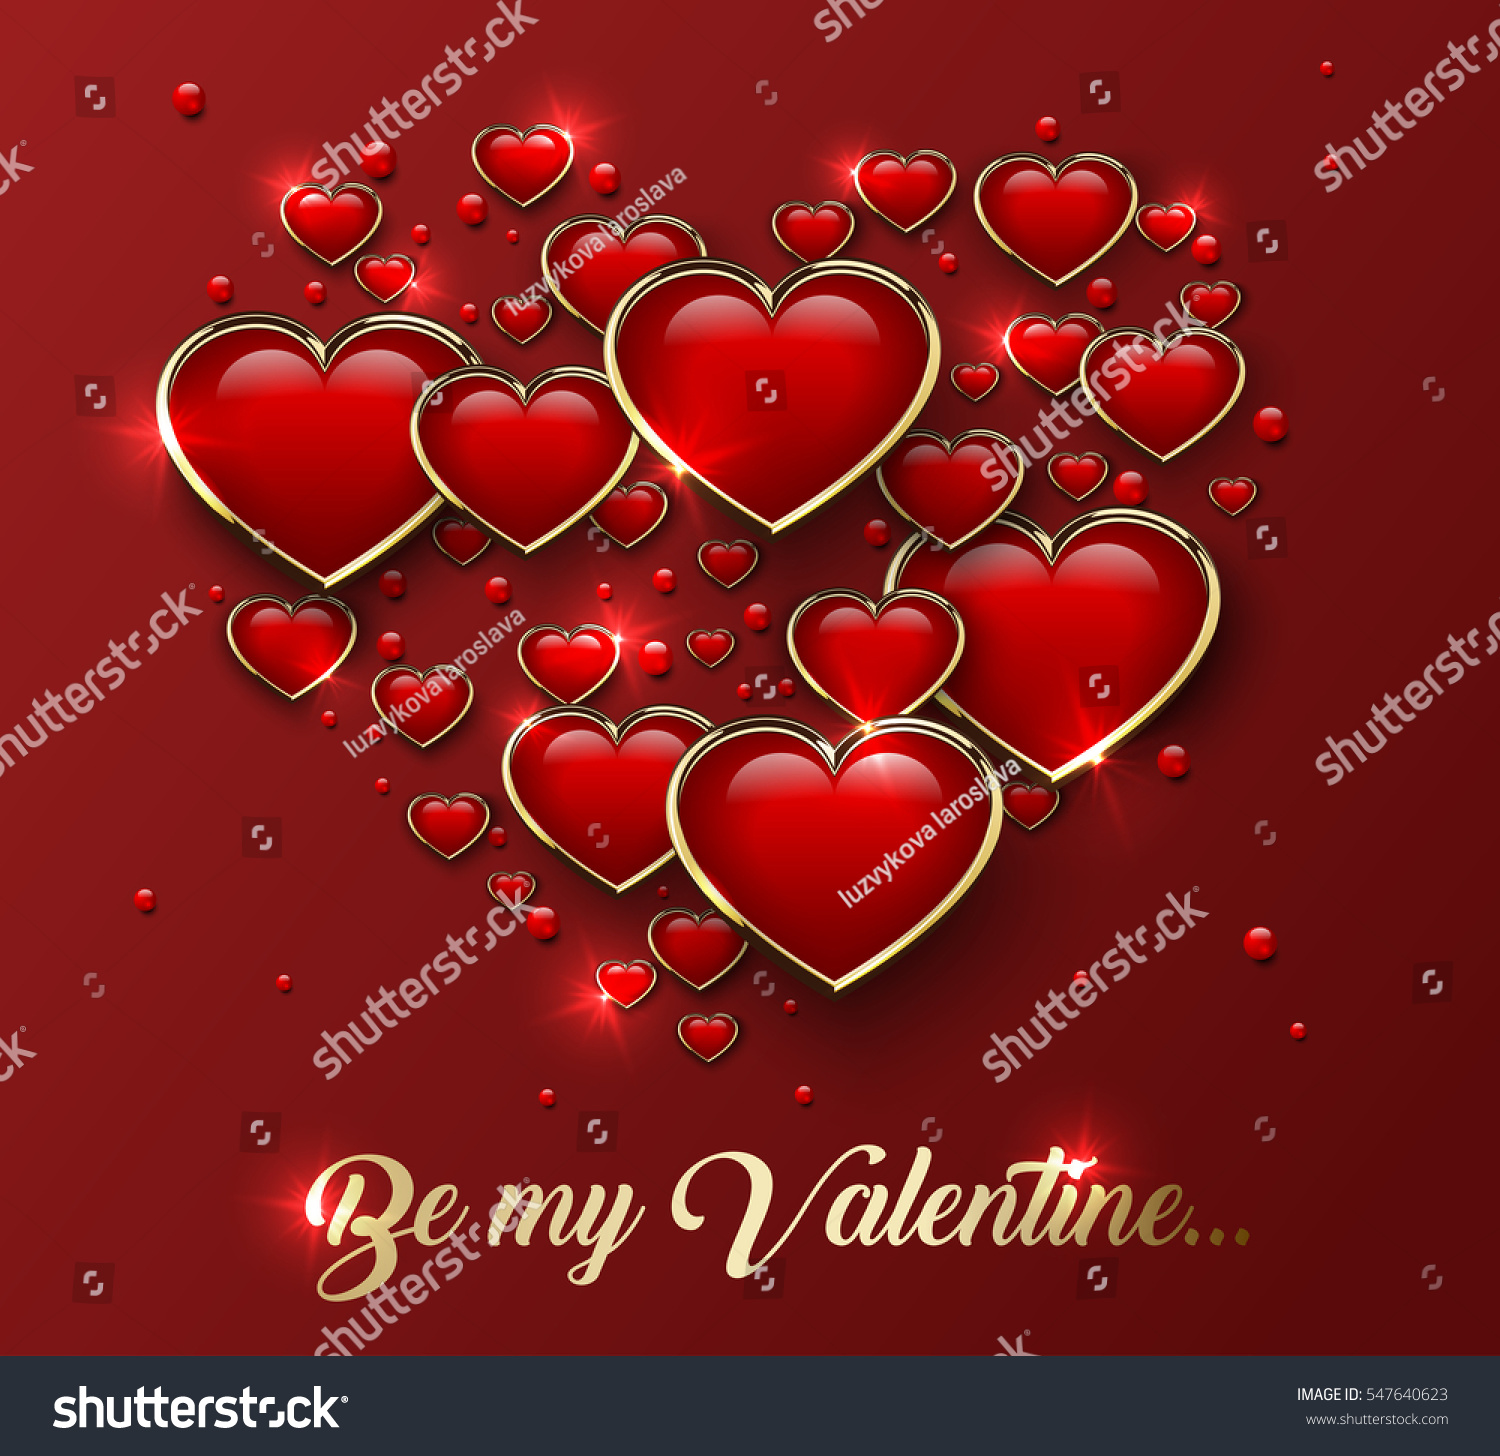 Be My Valentine Greeting Card Glossy Stock Vector Royalty Free